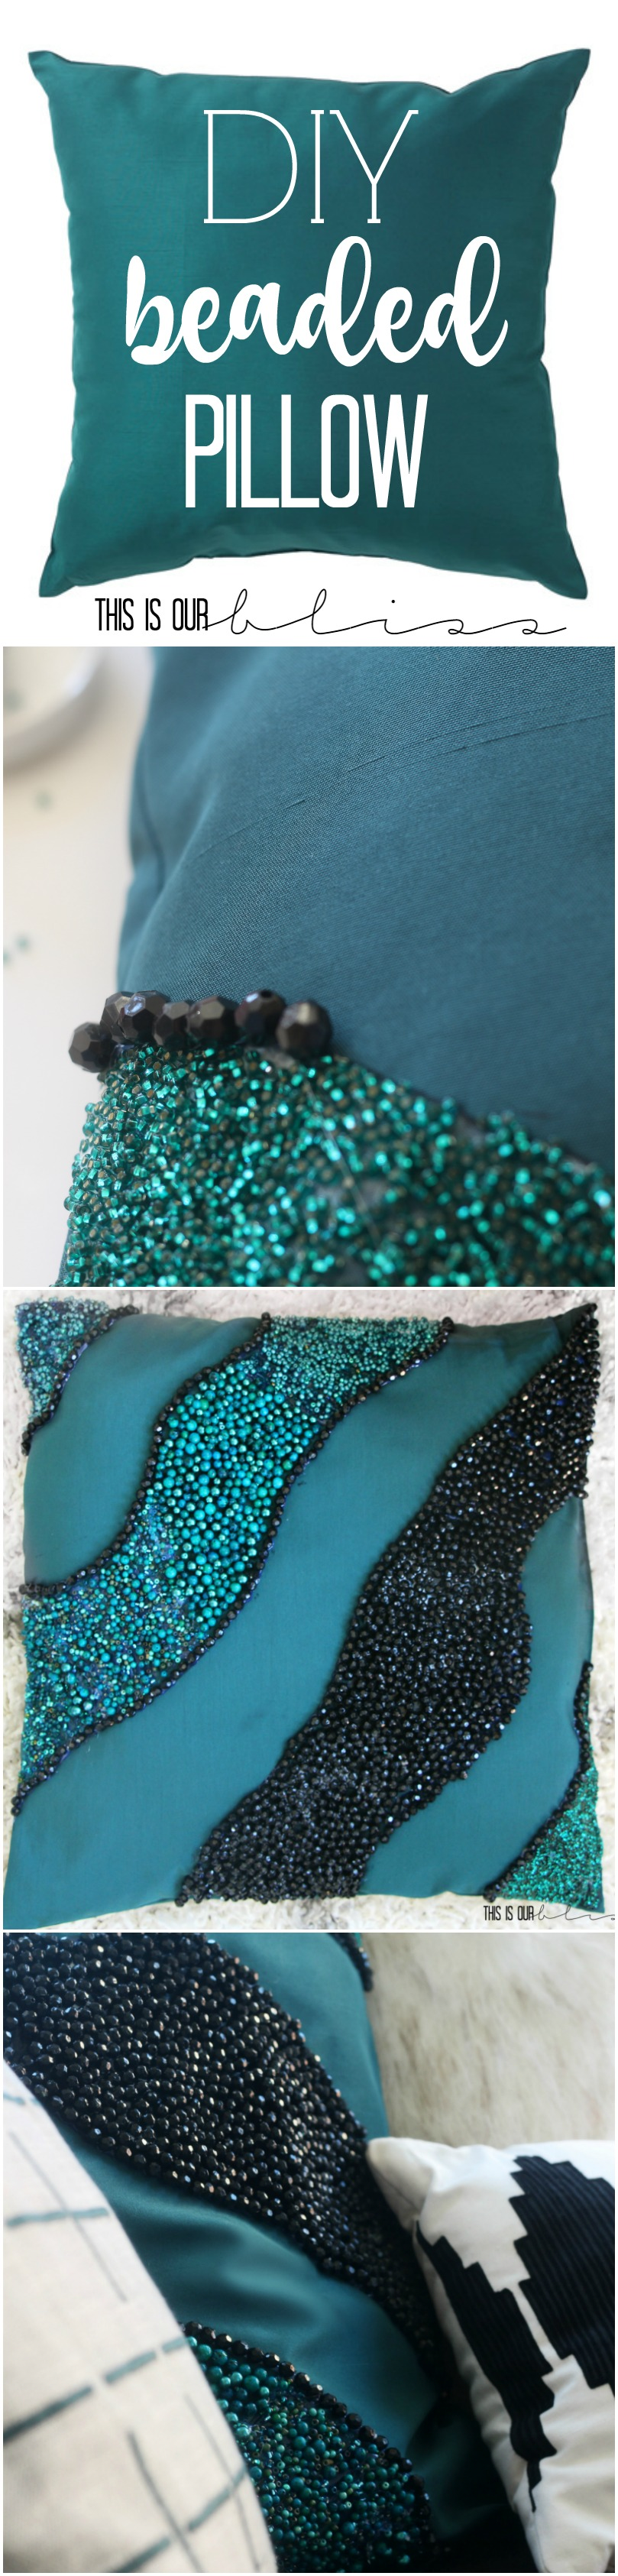 DIY no-sew pillow   West Elm beaded pillow knock-off   This is our Bliss   www.thisisourbliss.com